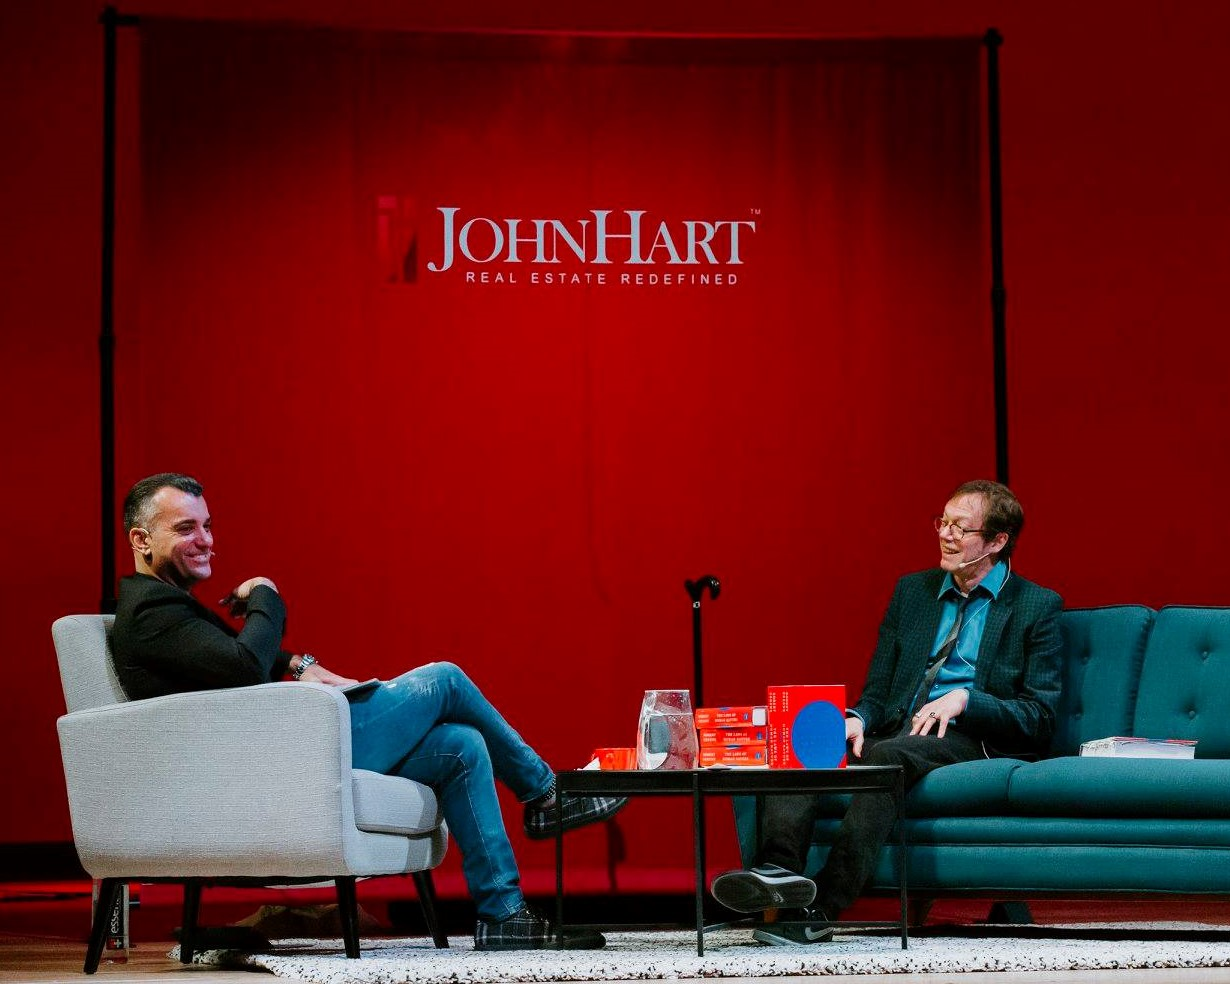 New York Times bestselling author Robert Greene talking with JohnHart CEO Harout Keuroghlian